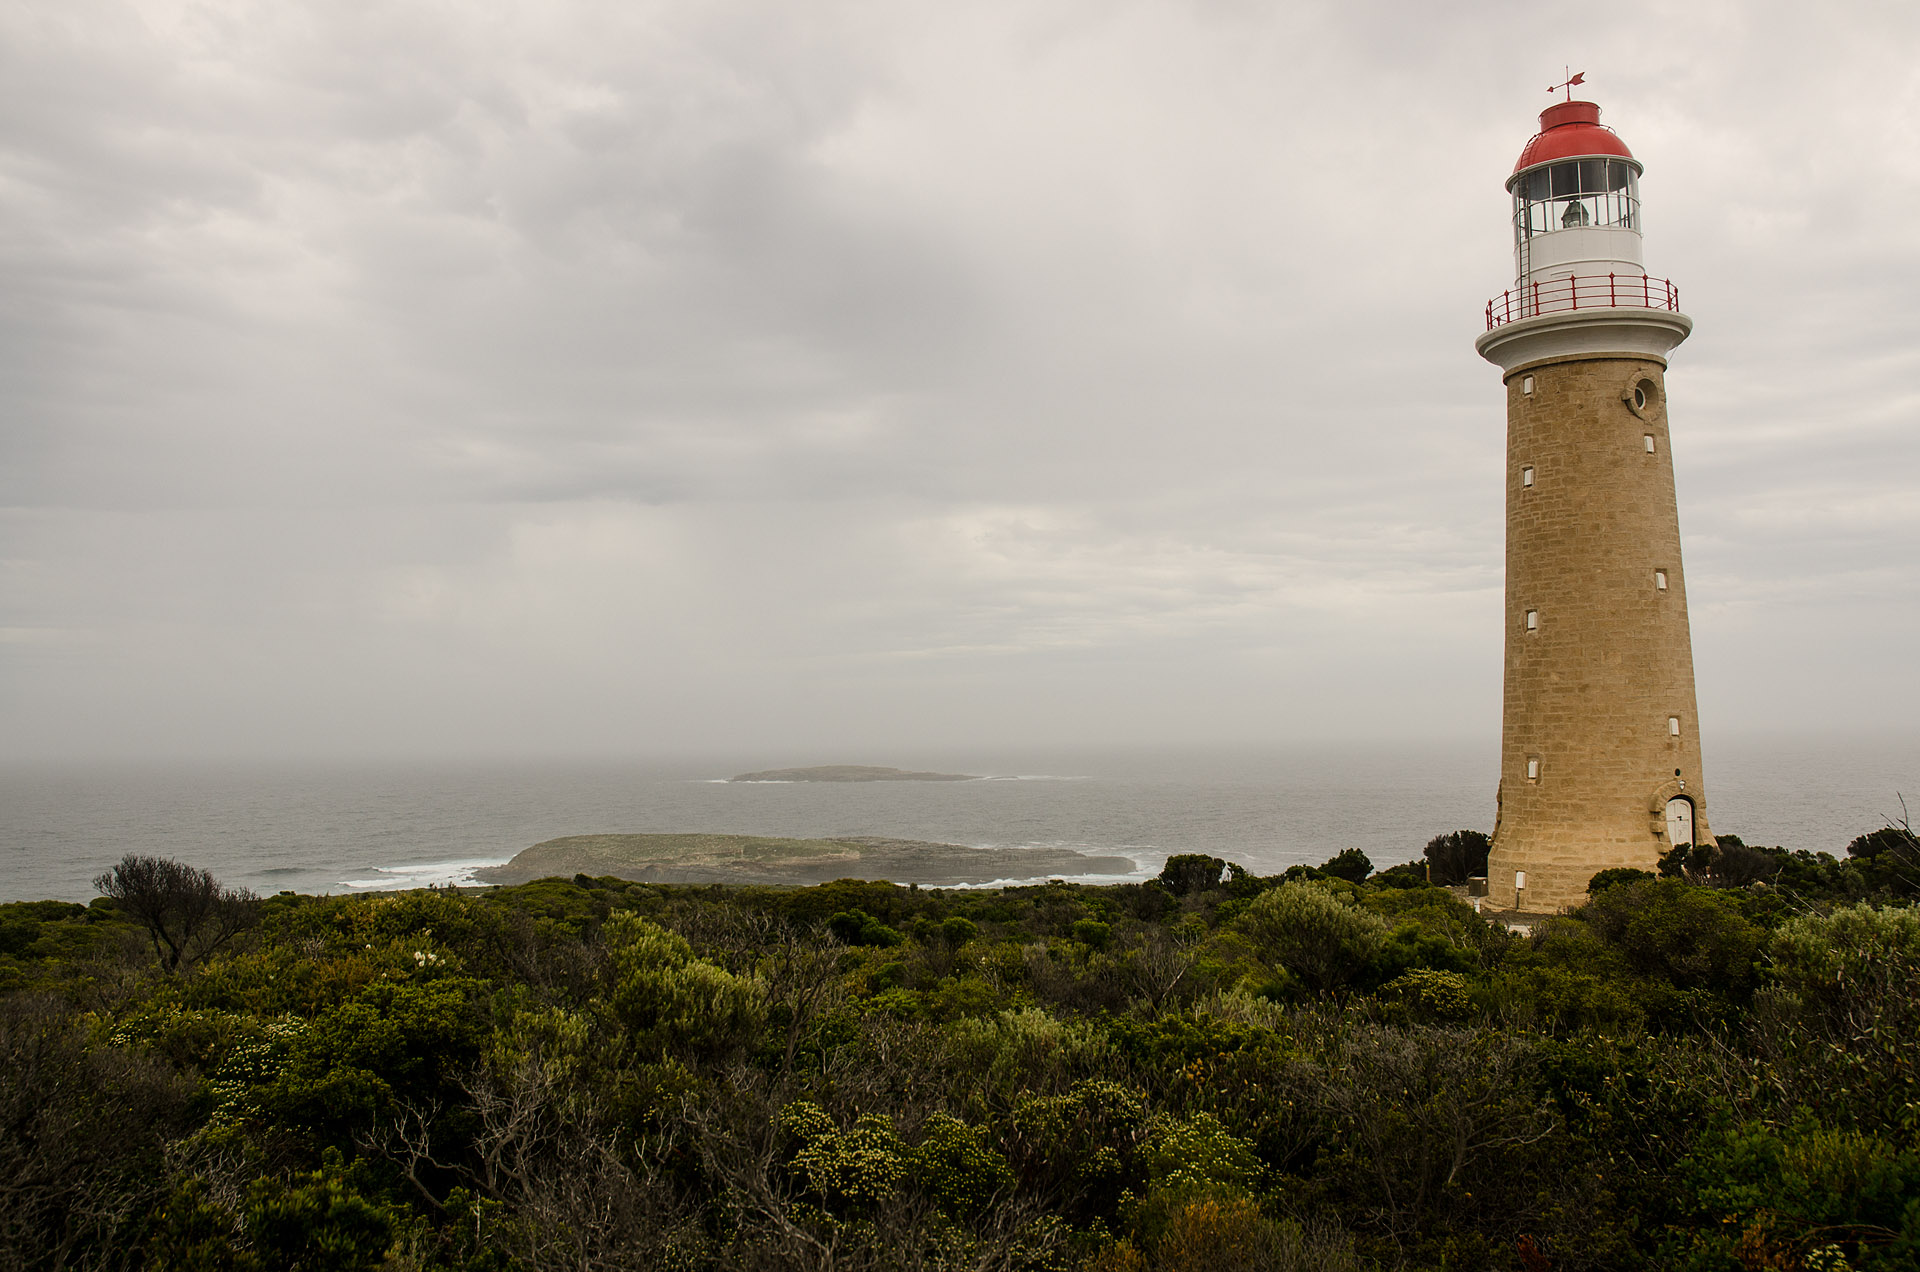 Cape du Couedic lighthouse